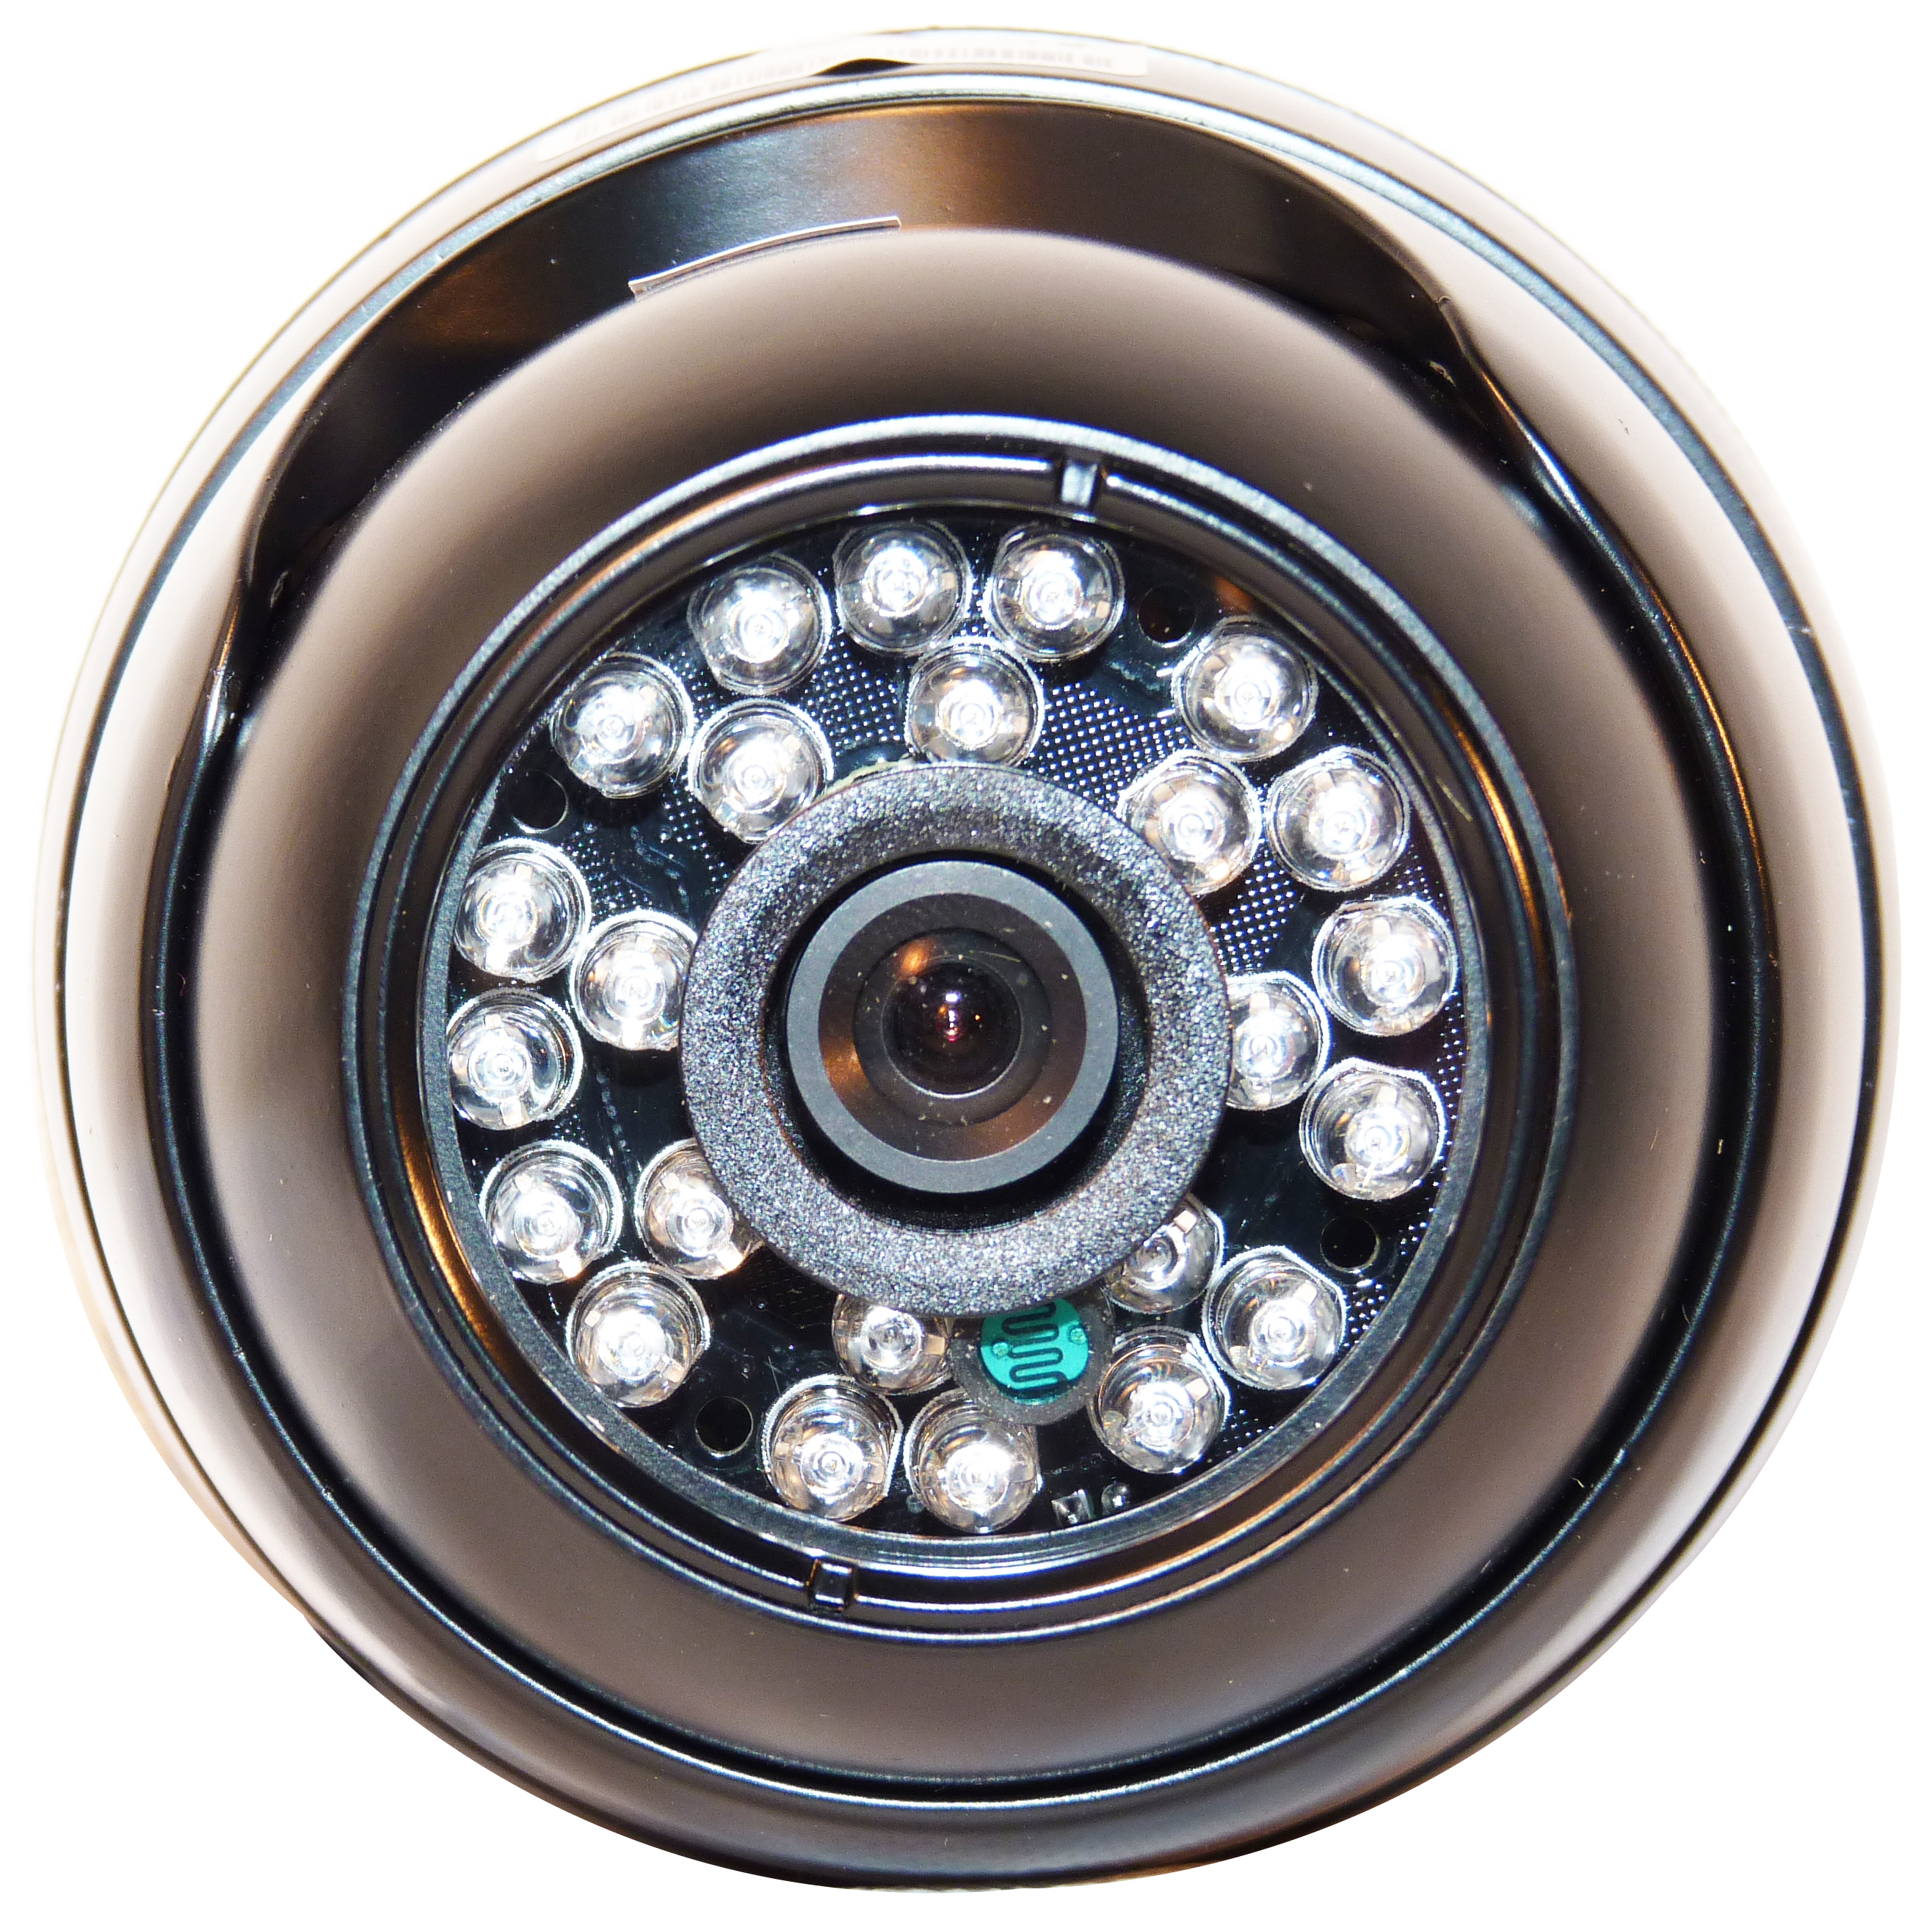 Image for DBS 740G - 700TVL CCTV Dome Security Camera - 1/3'' Sony Super HAD CCD II